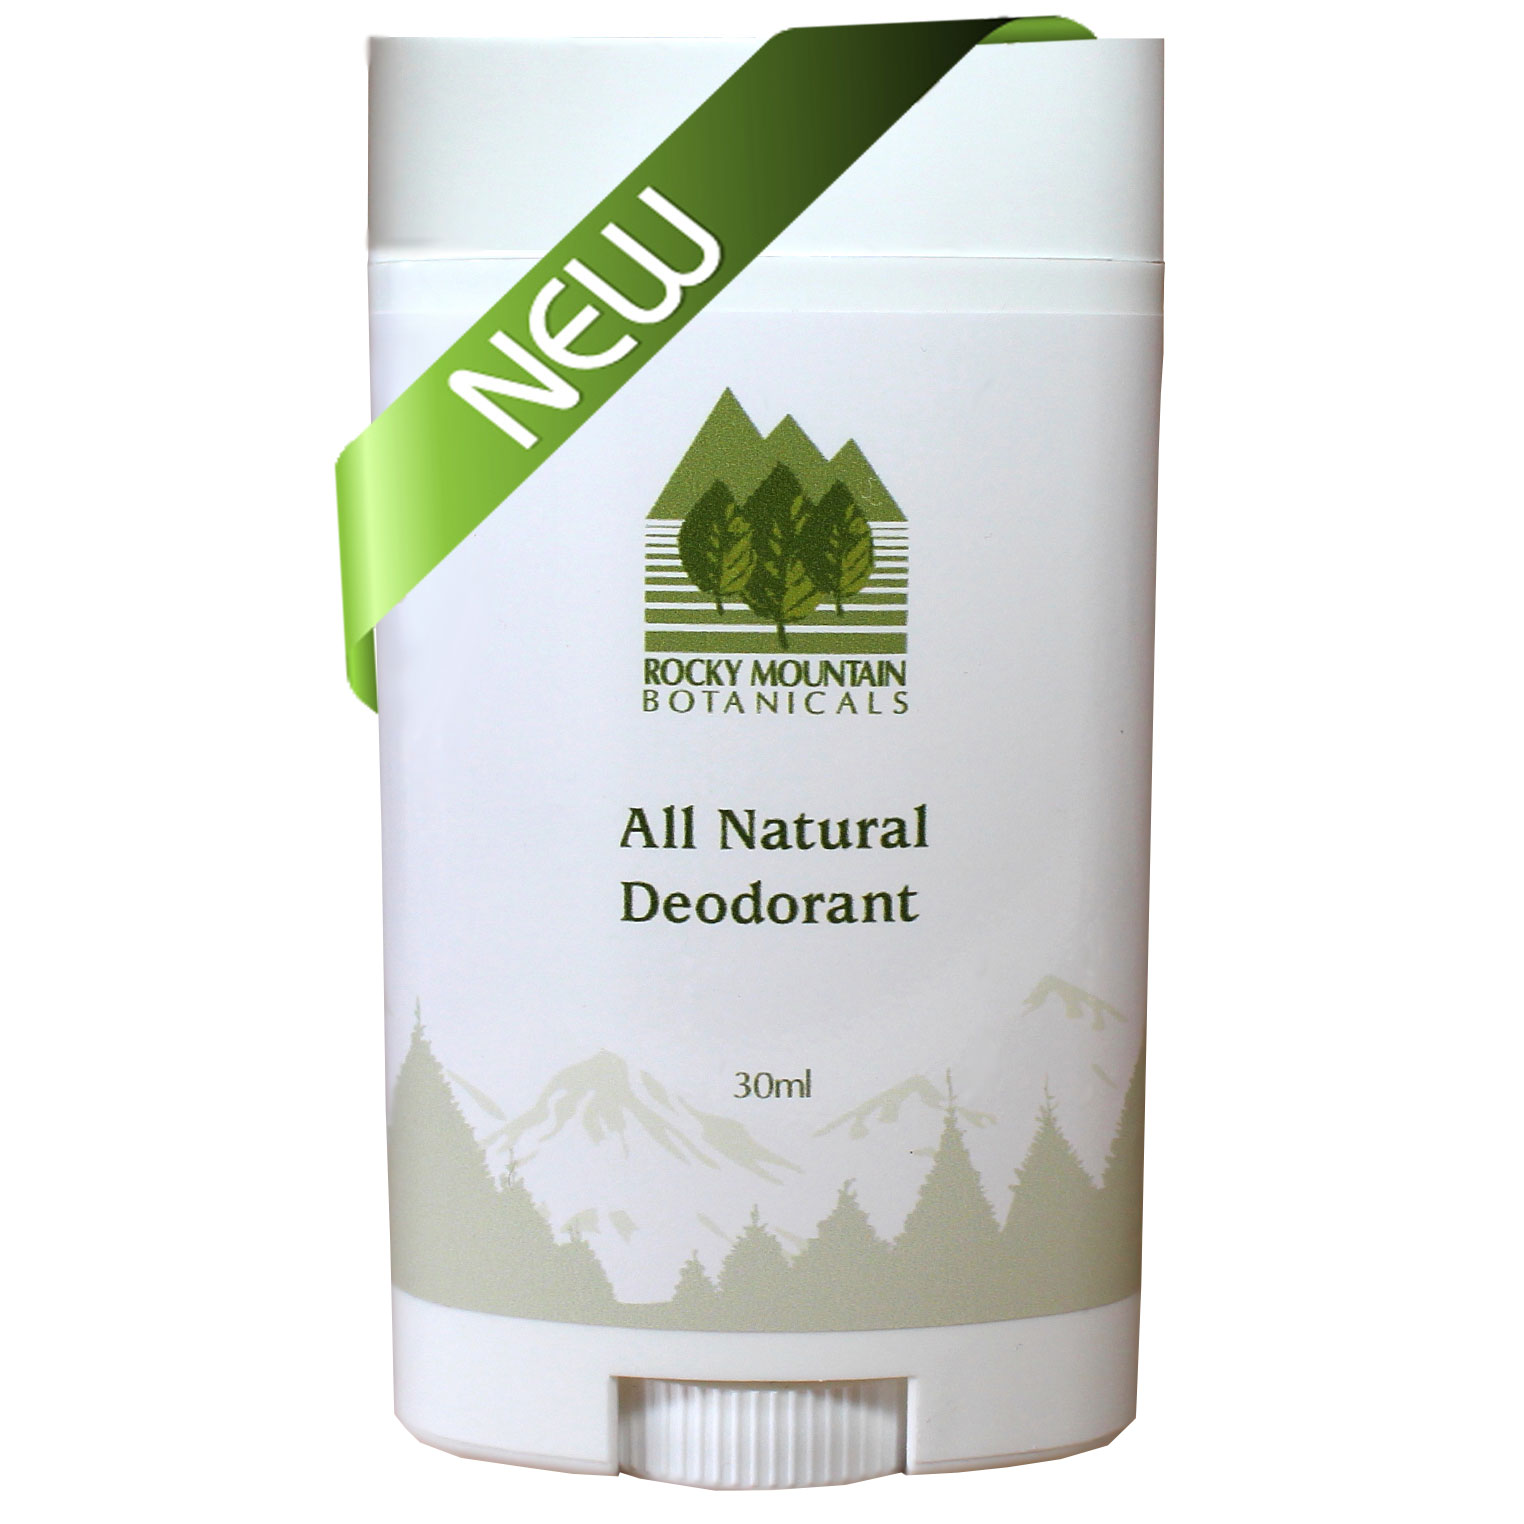 All Natural Fragrance Free Deodorant